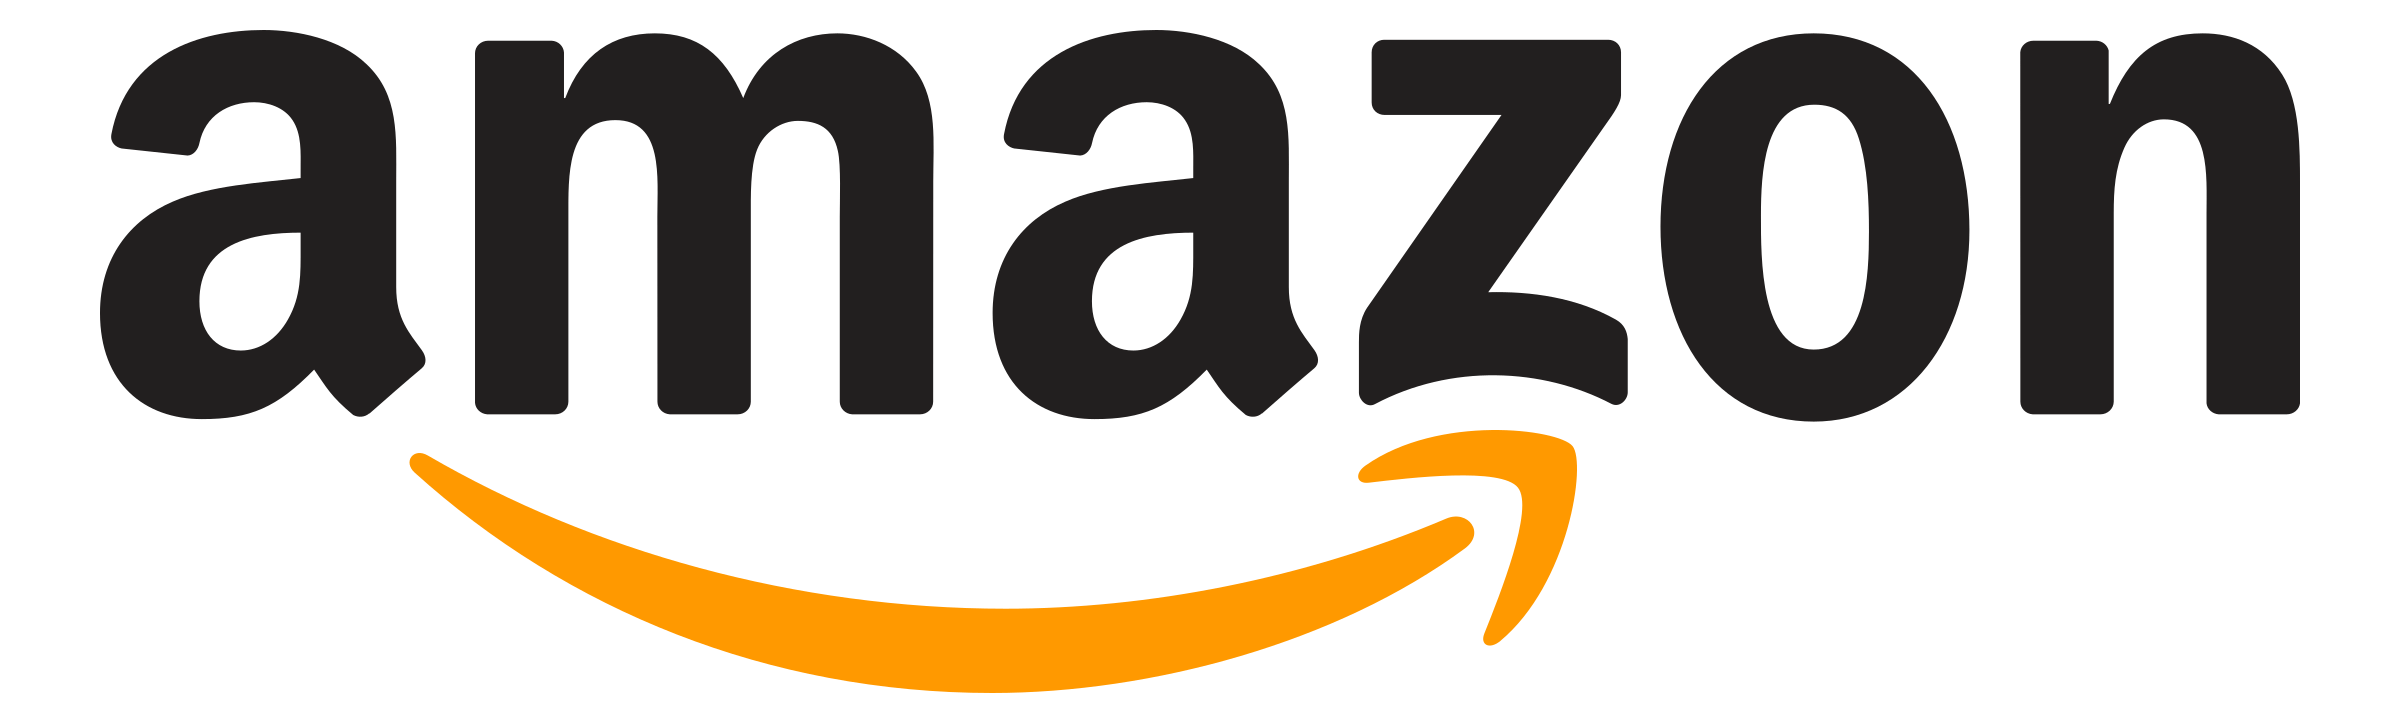 Svg vector freebie supply. Amazon logo png transparent background clip free download